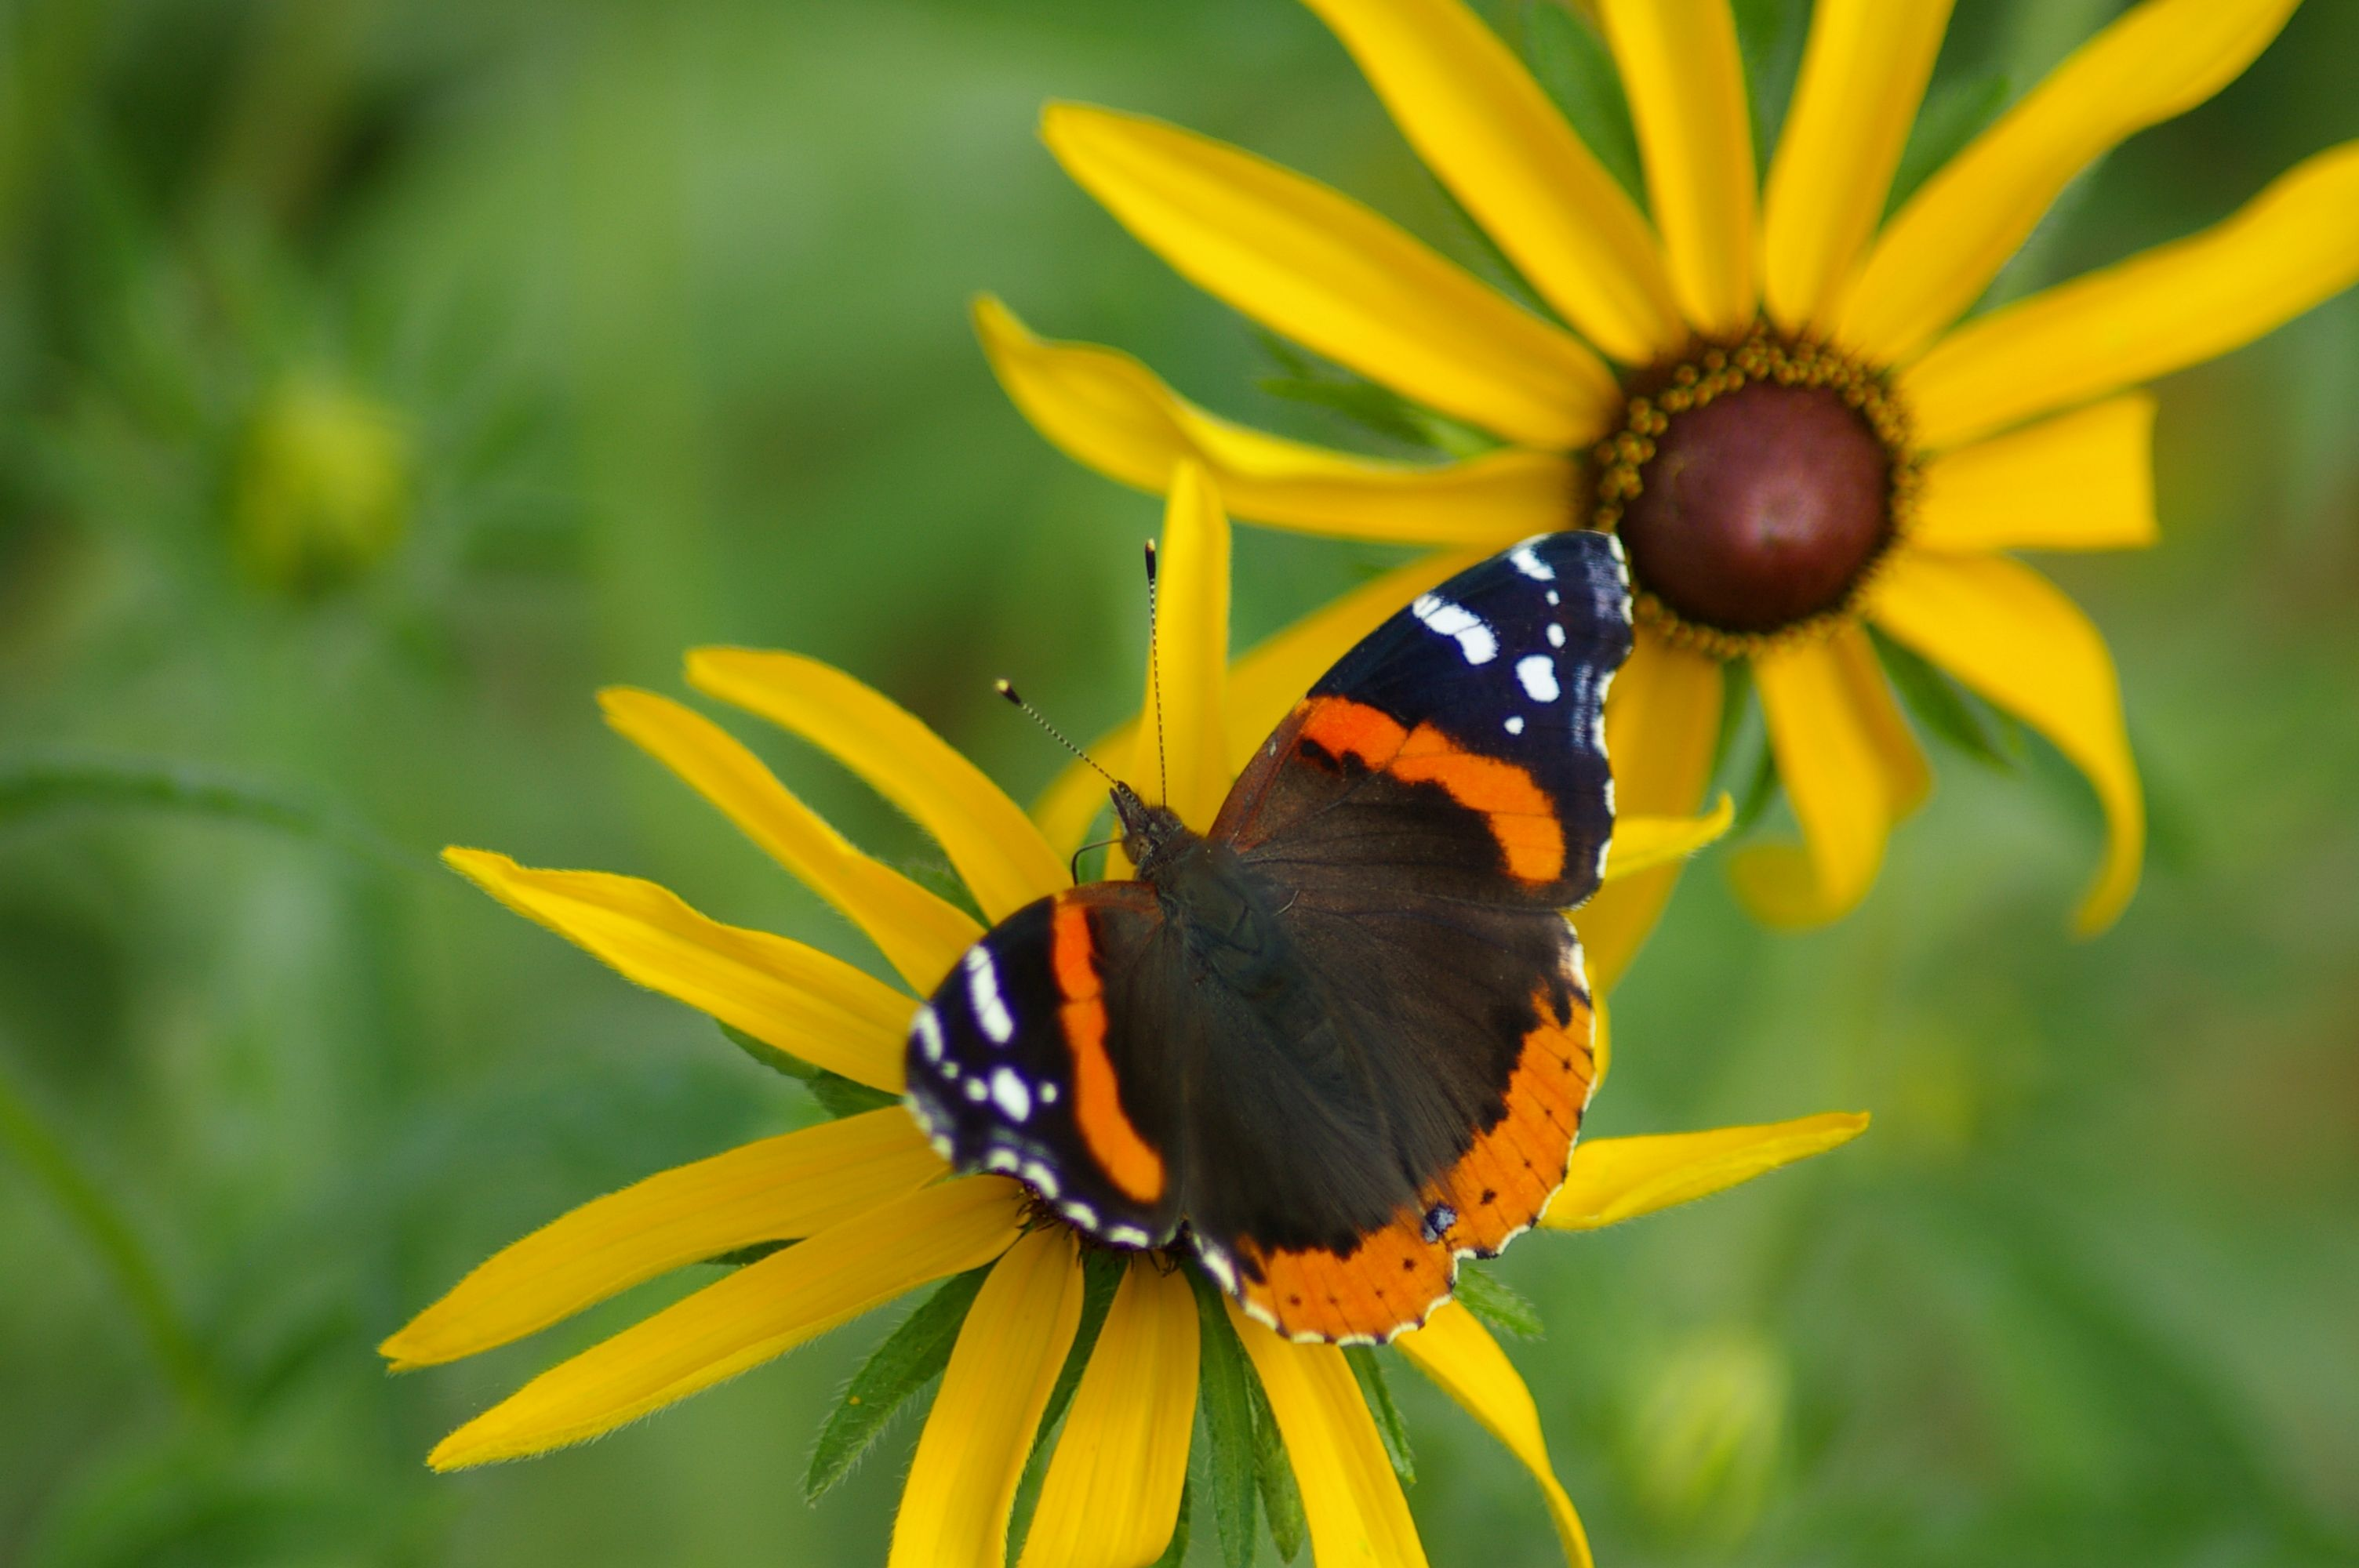 A red admiral butterfly is perched on a yellow flower.